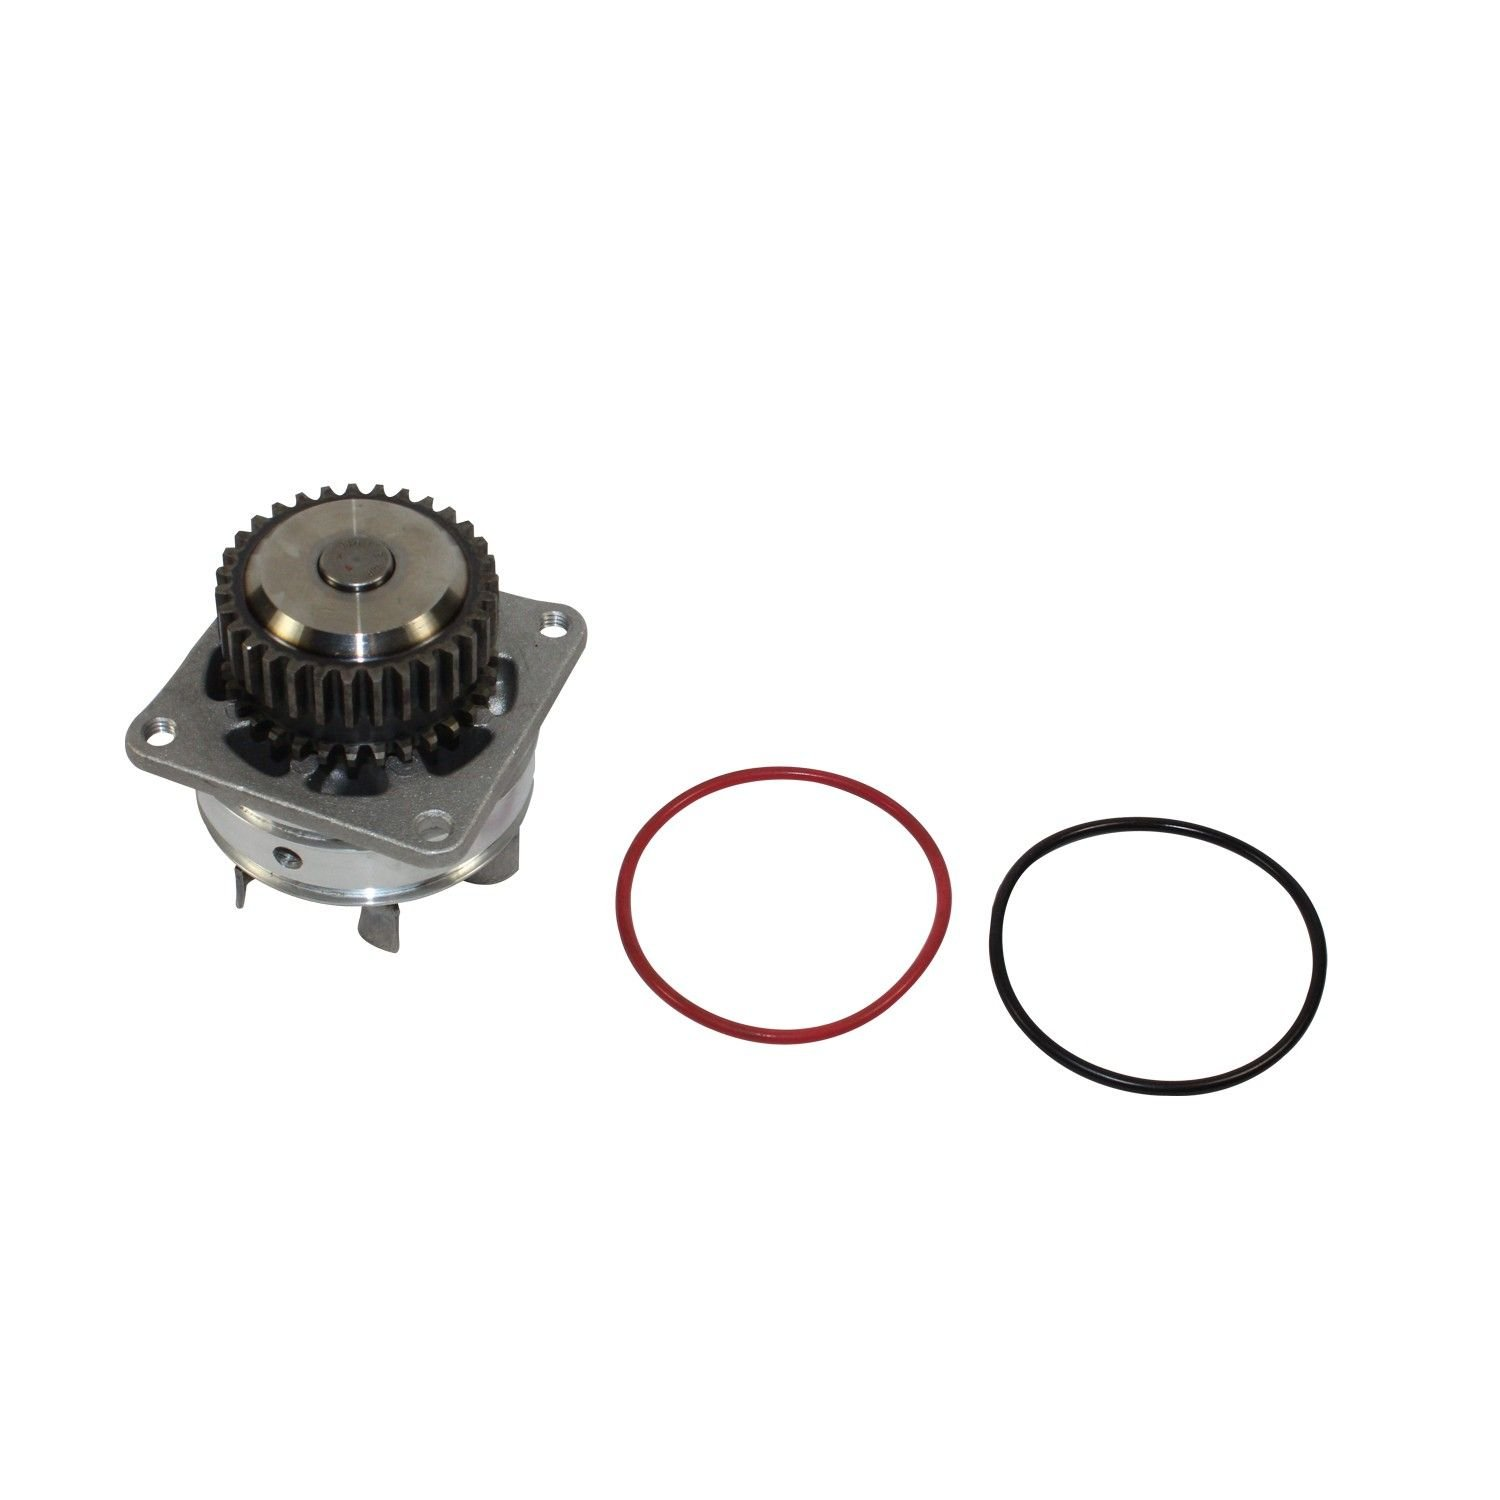 Nissan Altima Engine Water Pump Replacement (AISIN, Airtex